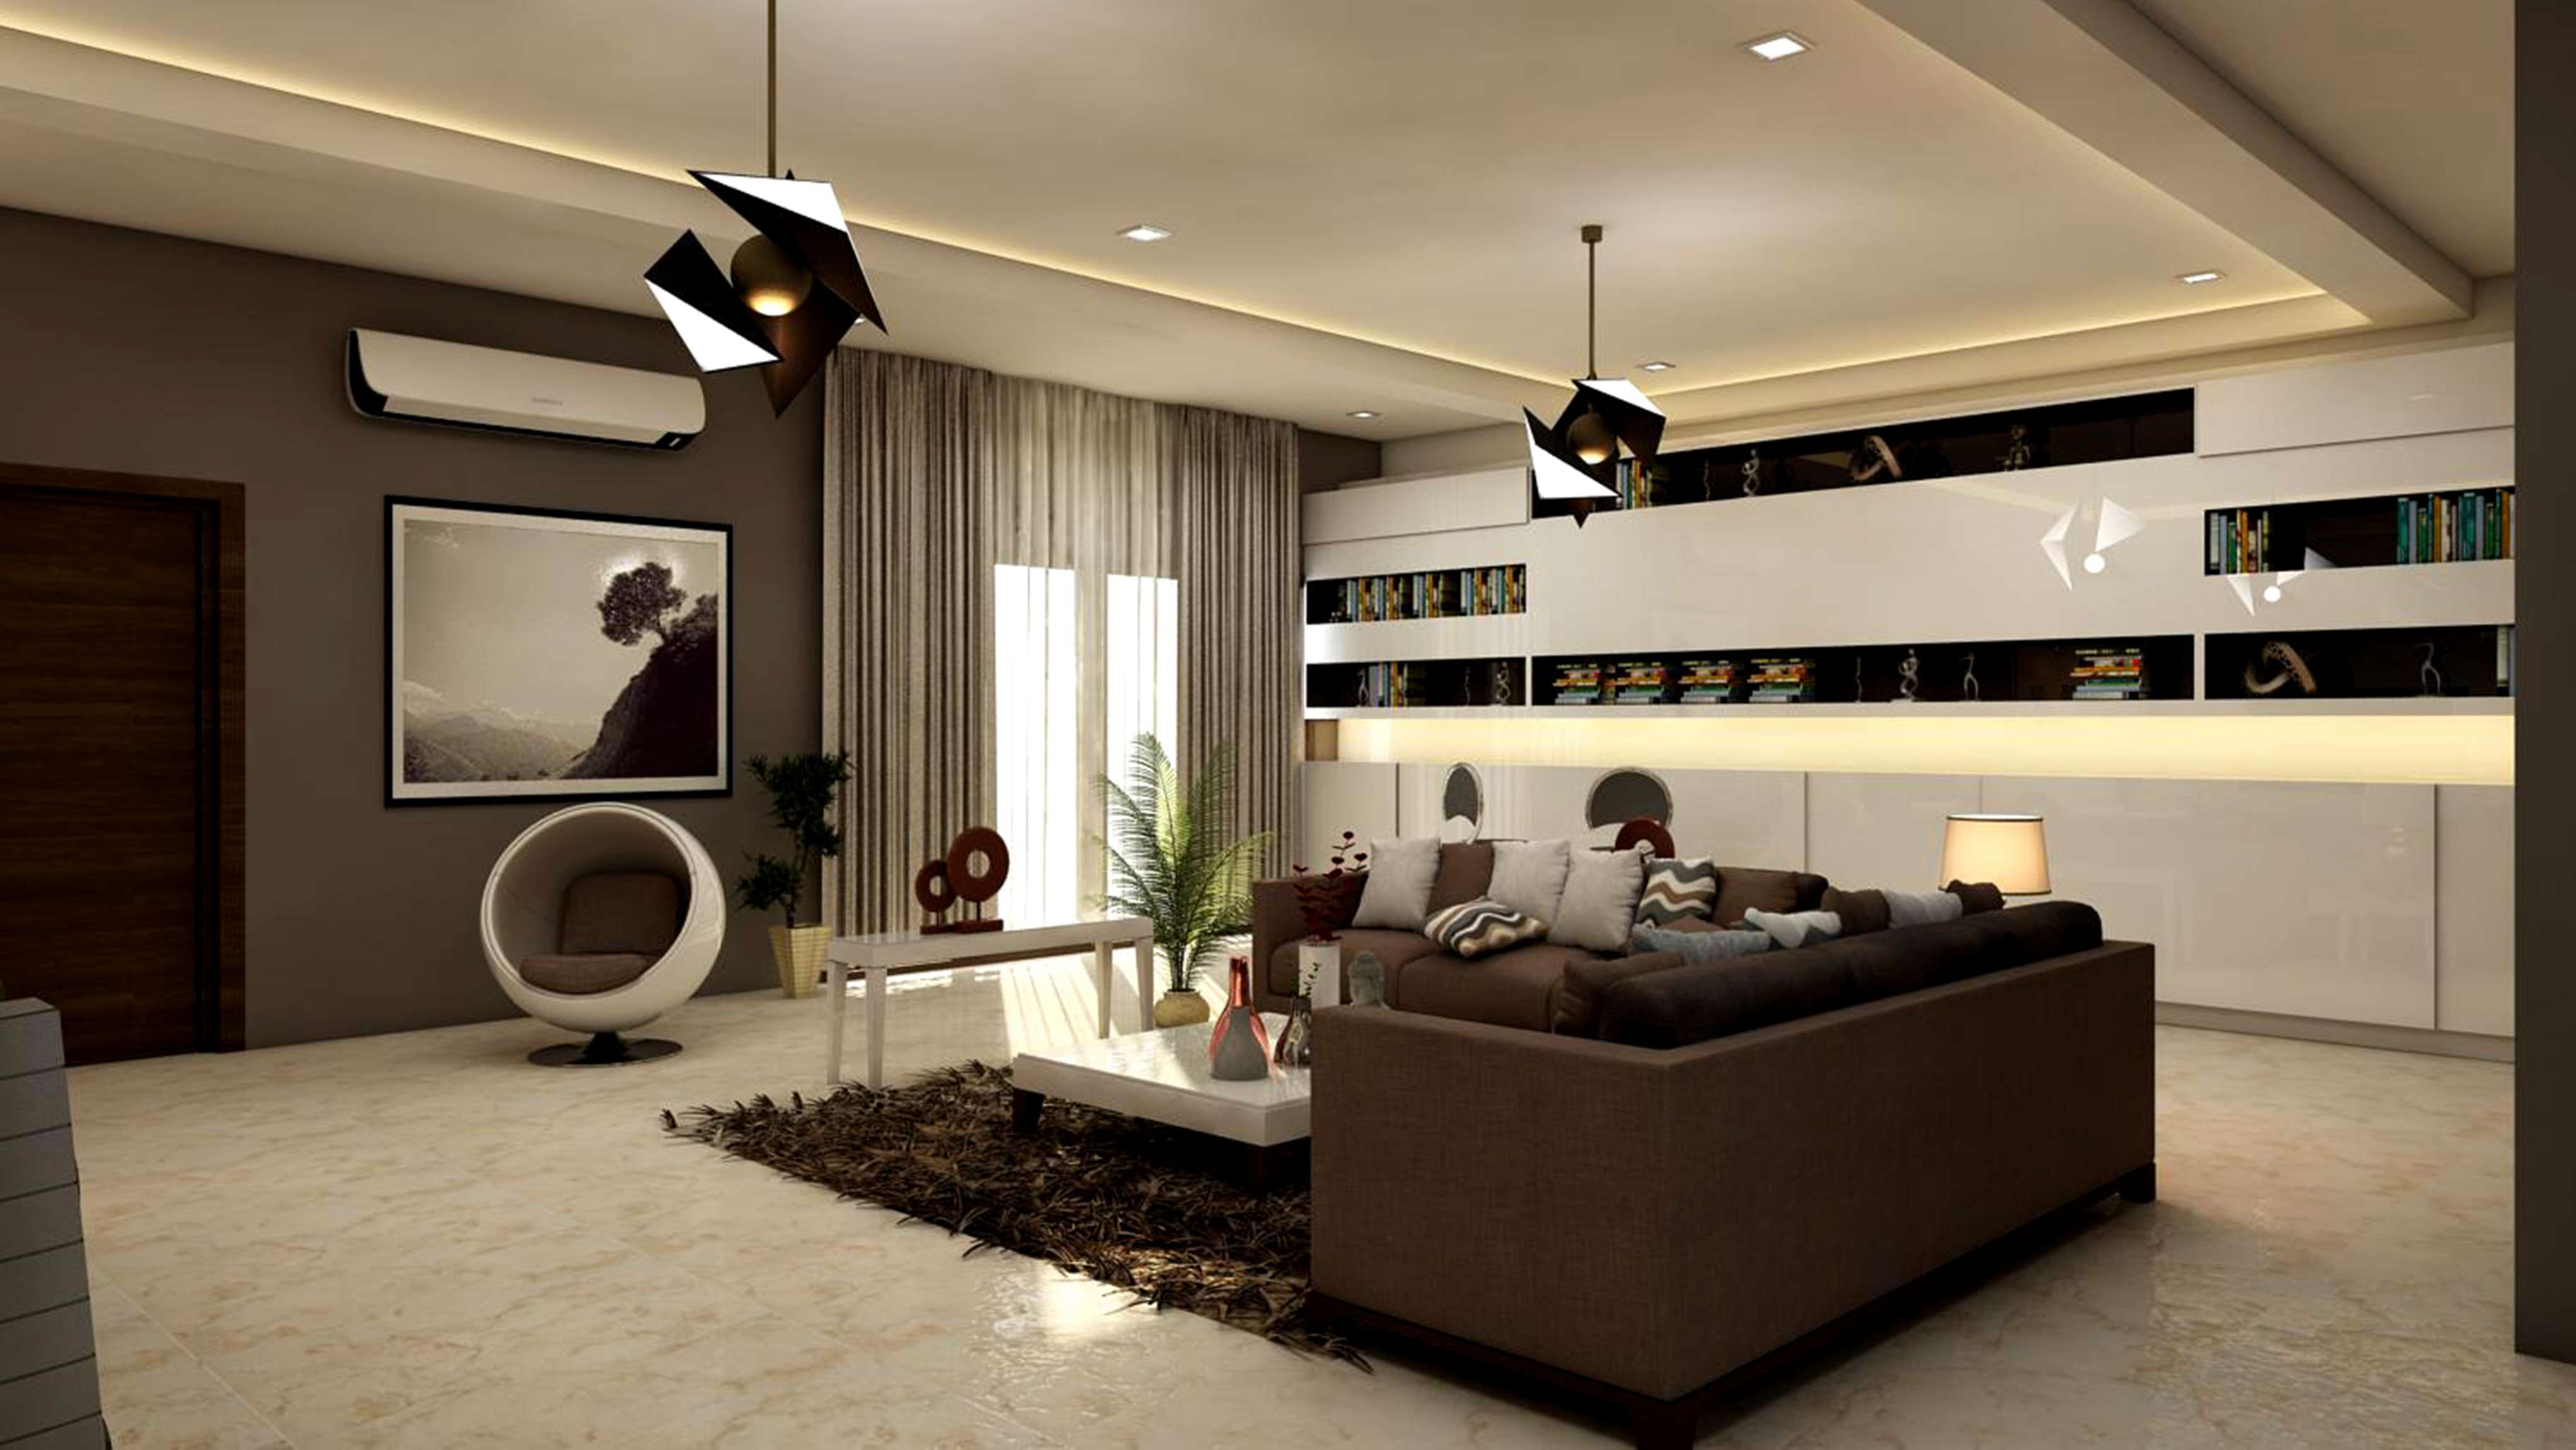 Design a peaceful living space in your new home